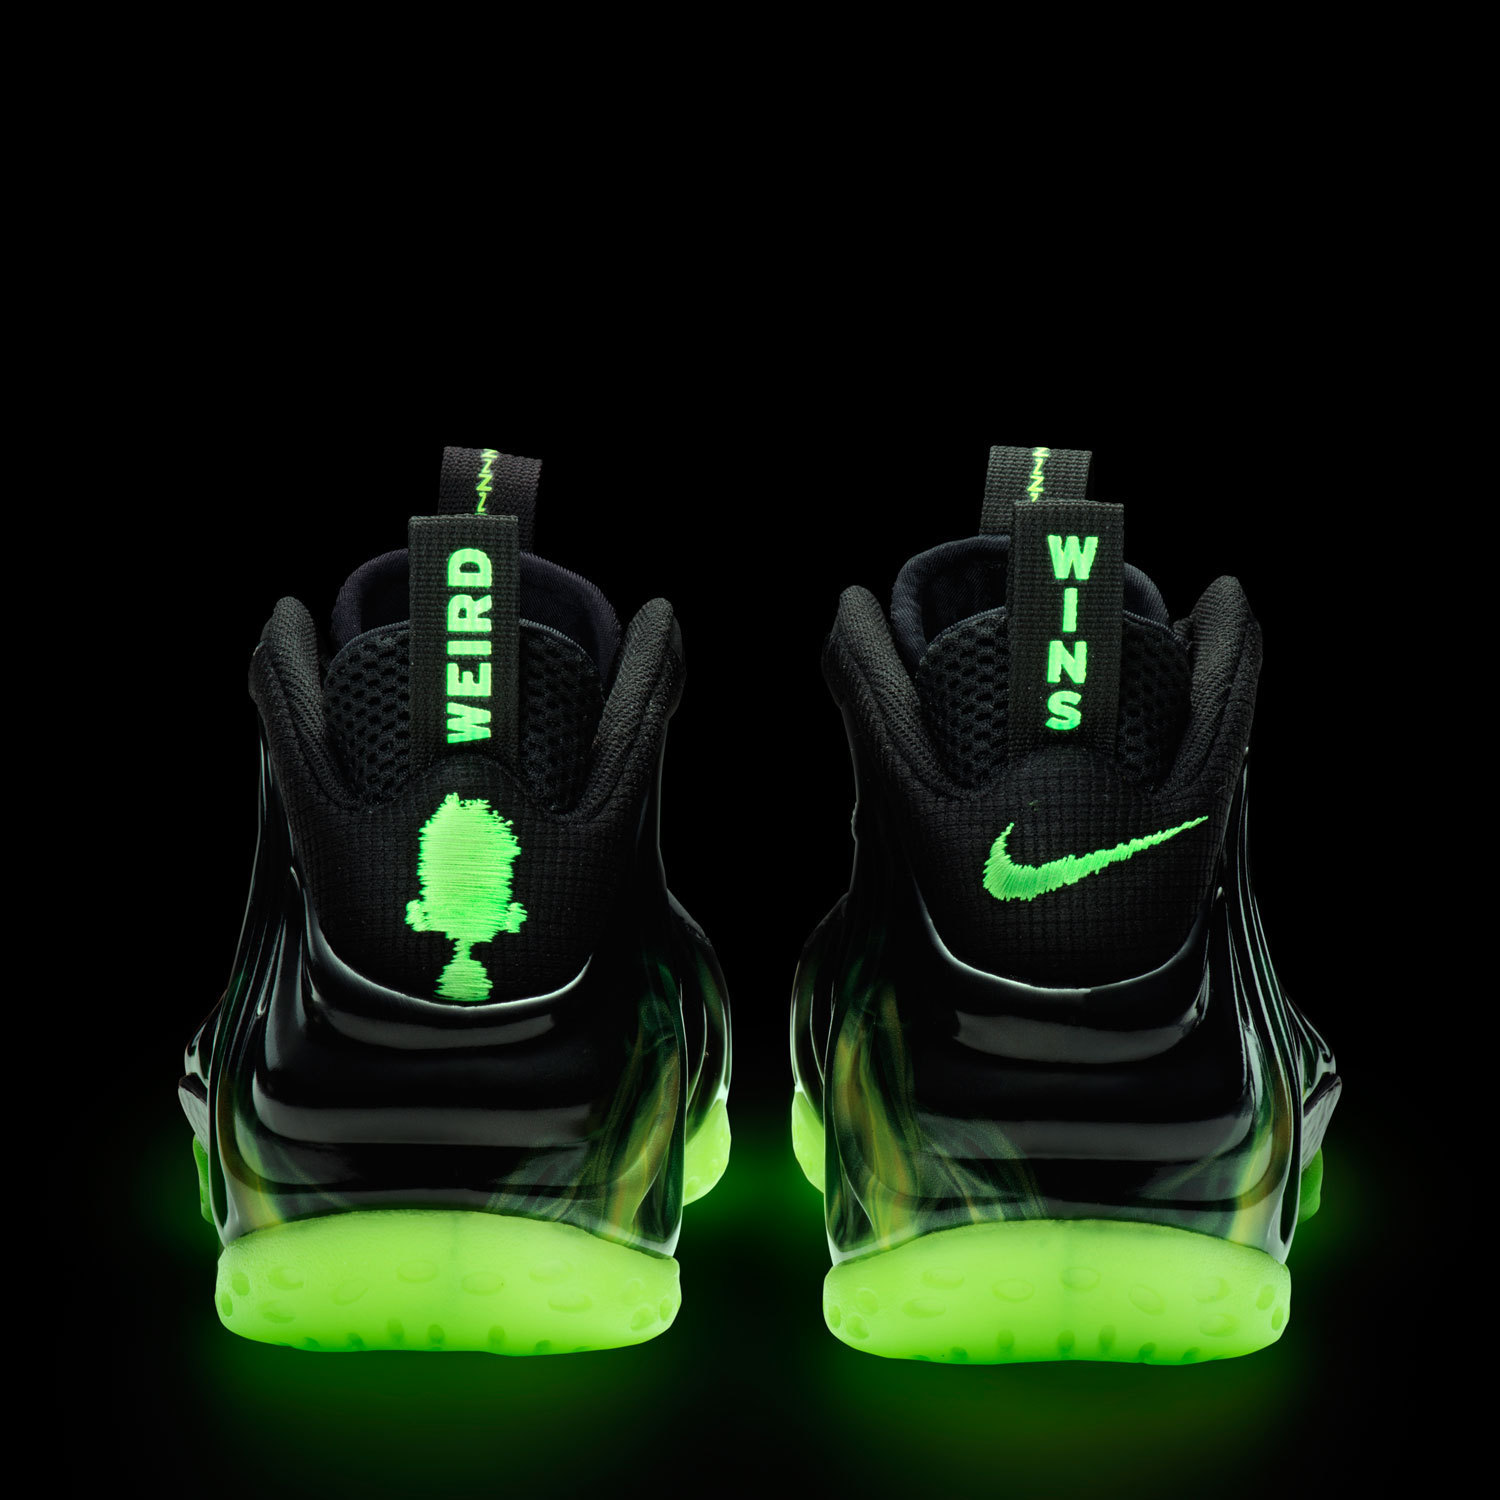 new styles d9c8f 21a13 ... usa nike air foamposite one paranorman ebay 3 eca56 856cf